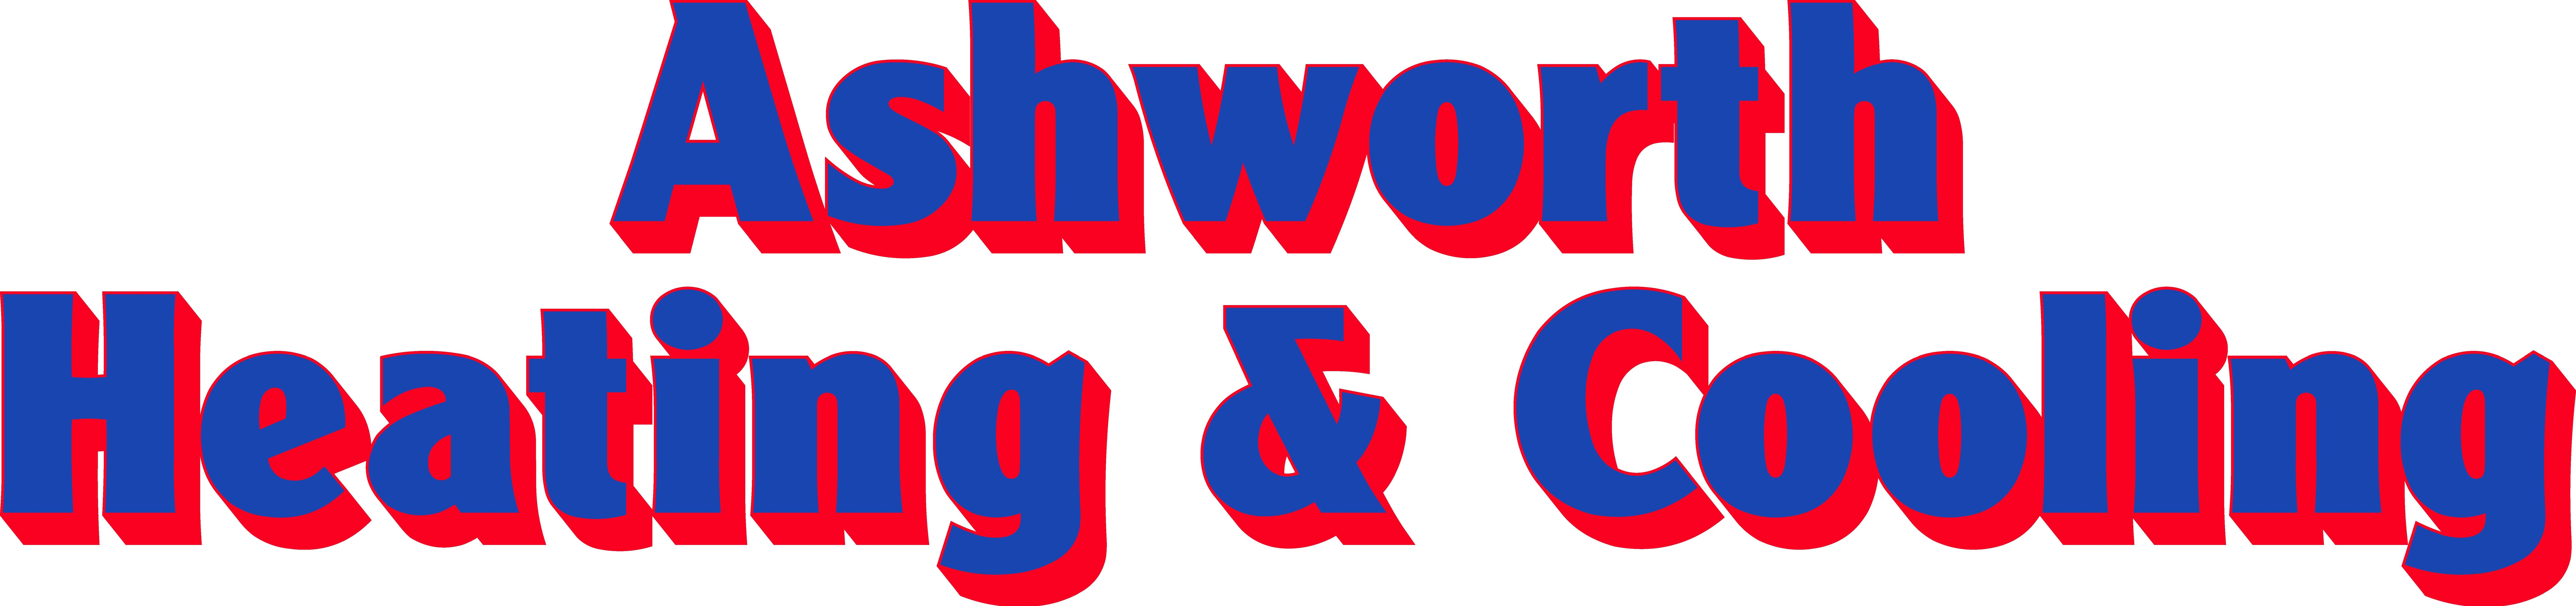 Ashworth Heating & Cooling